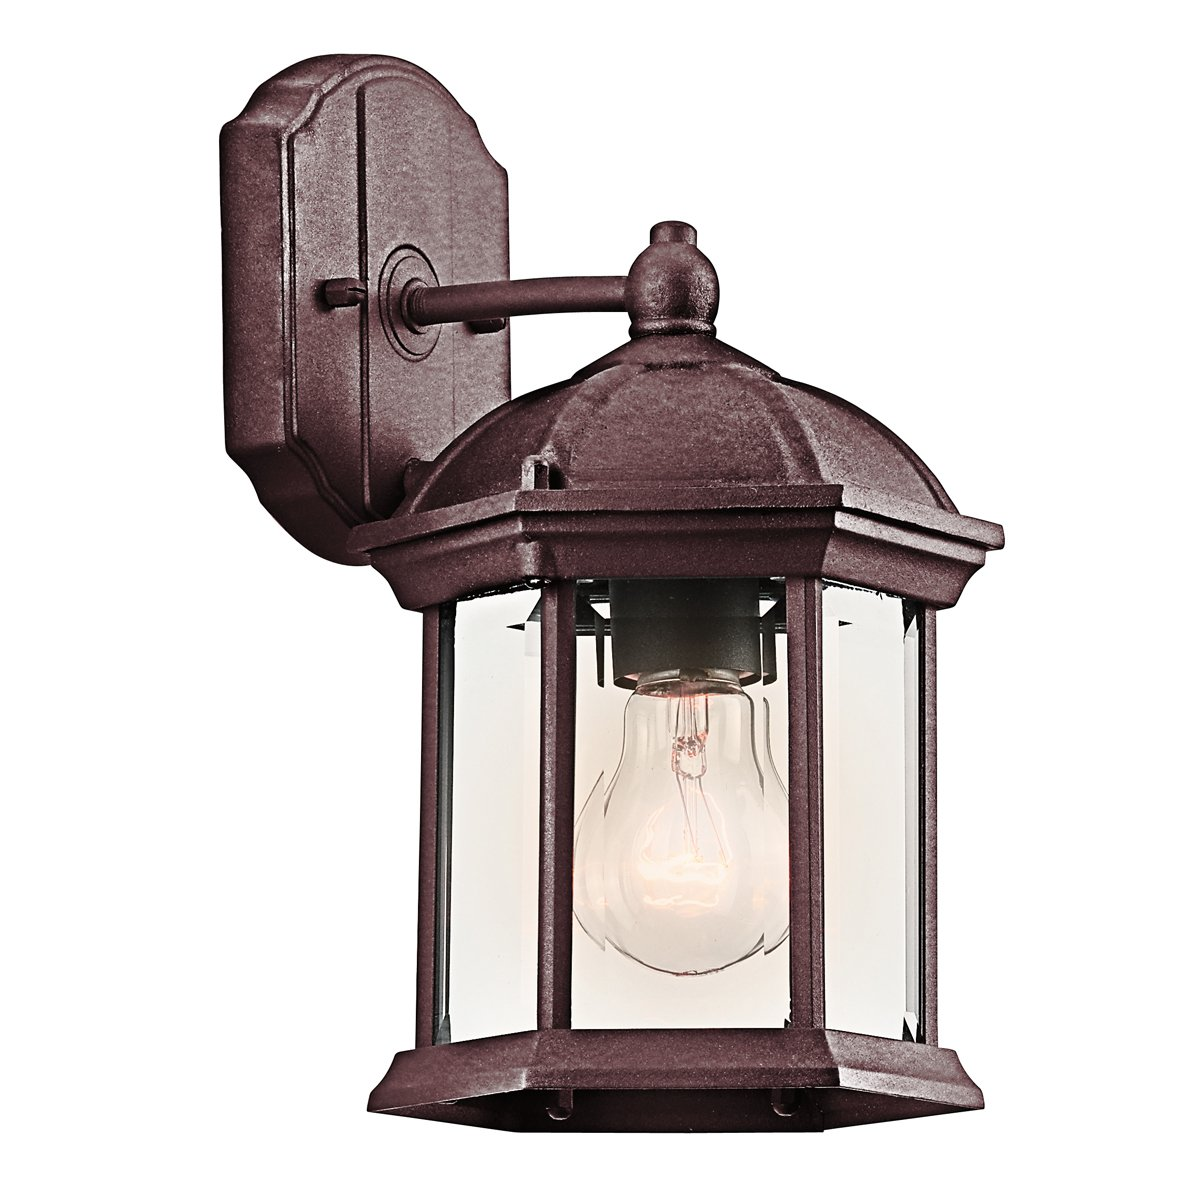 Kichler 49183TZ  Barrie Outdoor Wall Light  Tannery Bronze   Wall Porch  Lights   Amazon comKichler 49183TZ  Barrie Outdoor Wall Light  Tannery Bronze   Wall  . Kichler Lighting Outdoor Sconce. Home Design Ideas